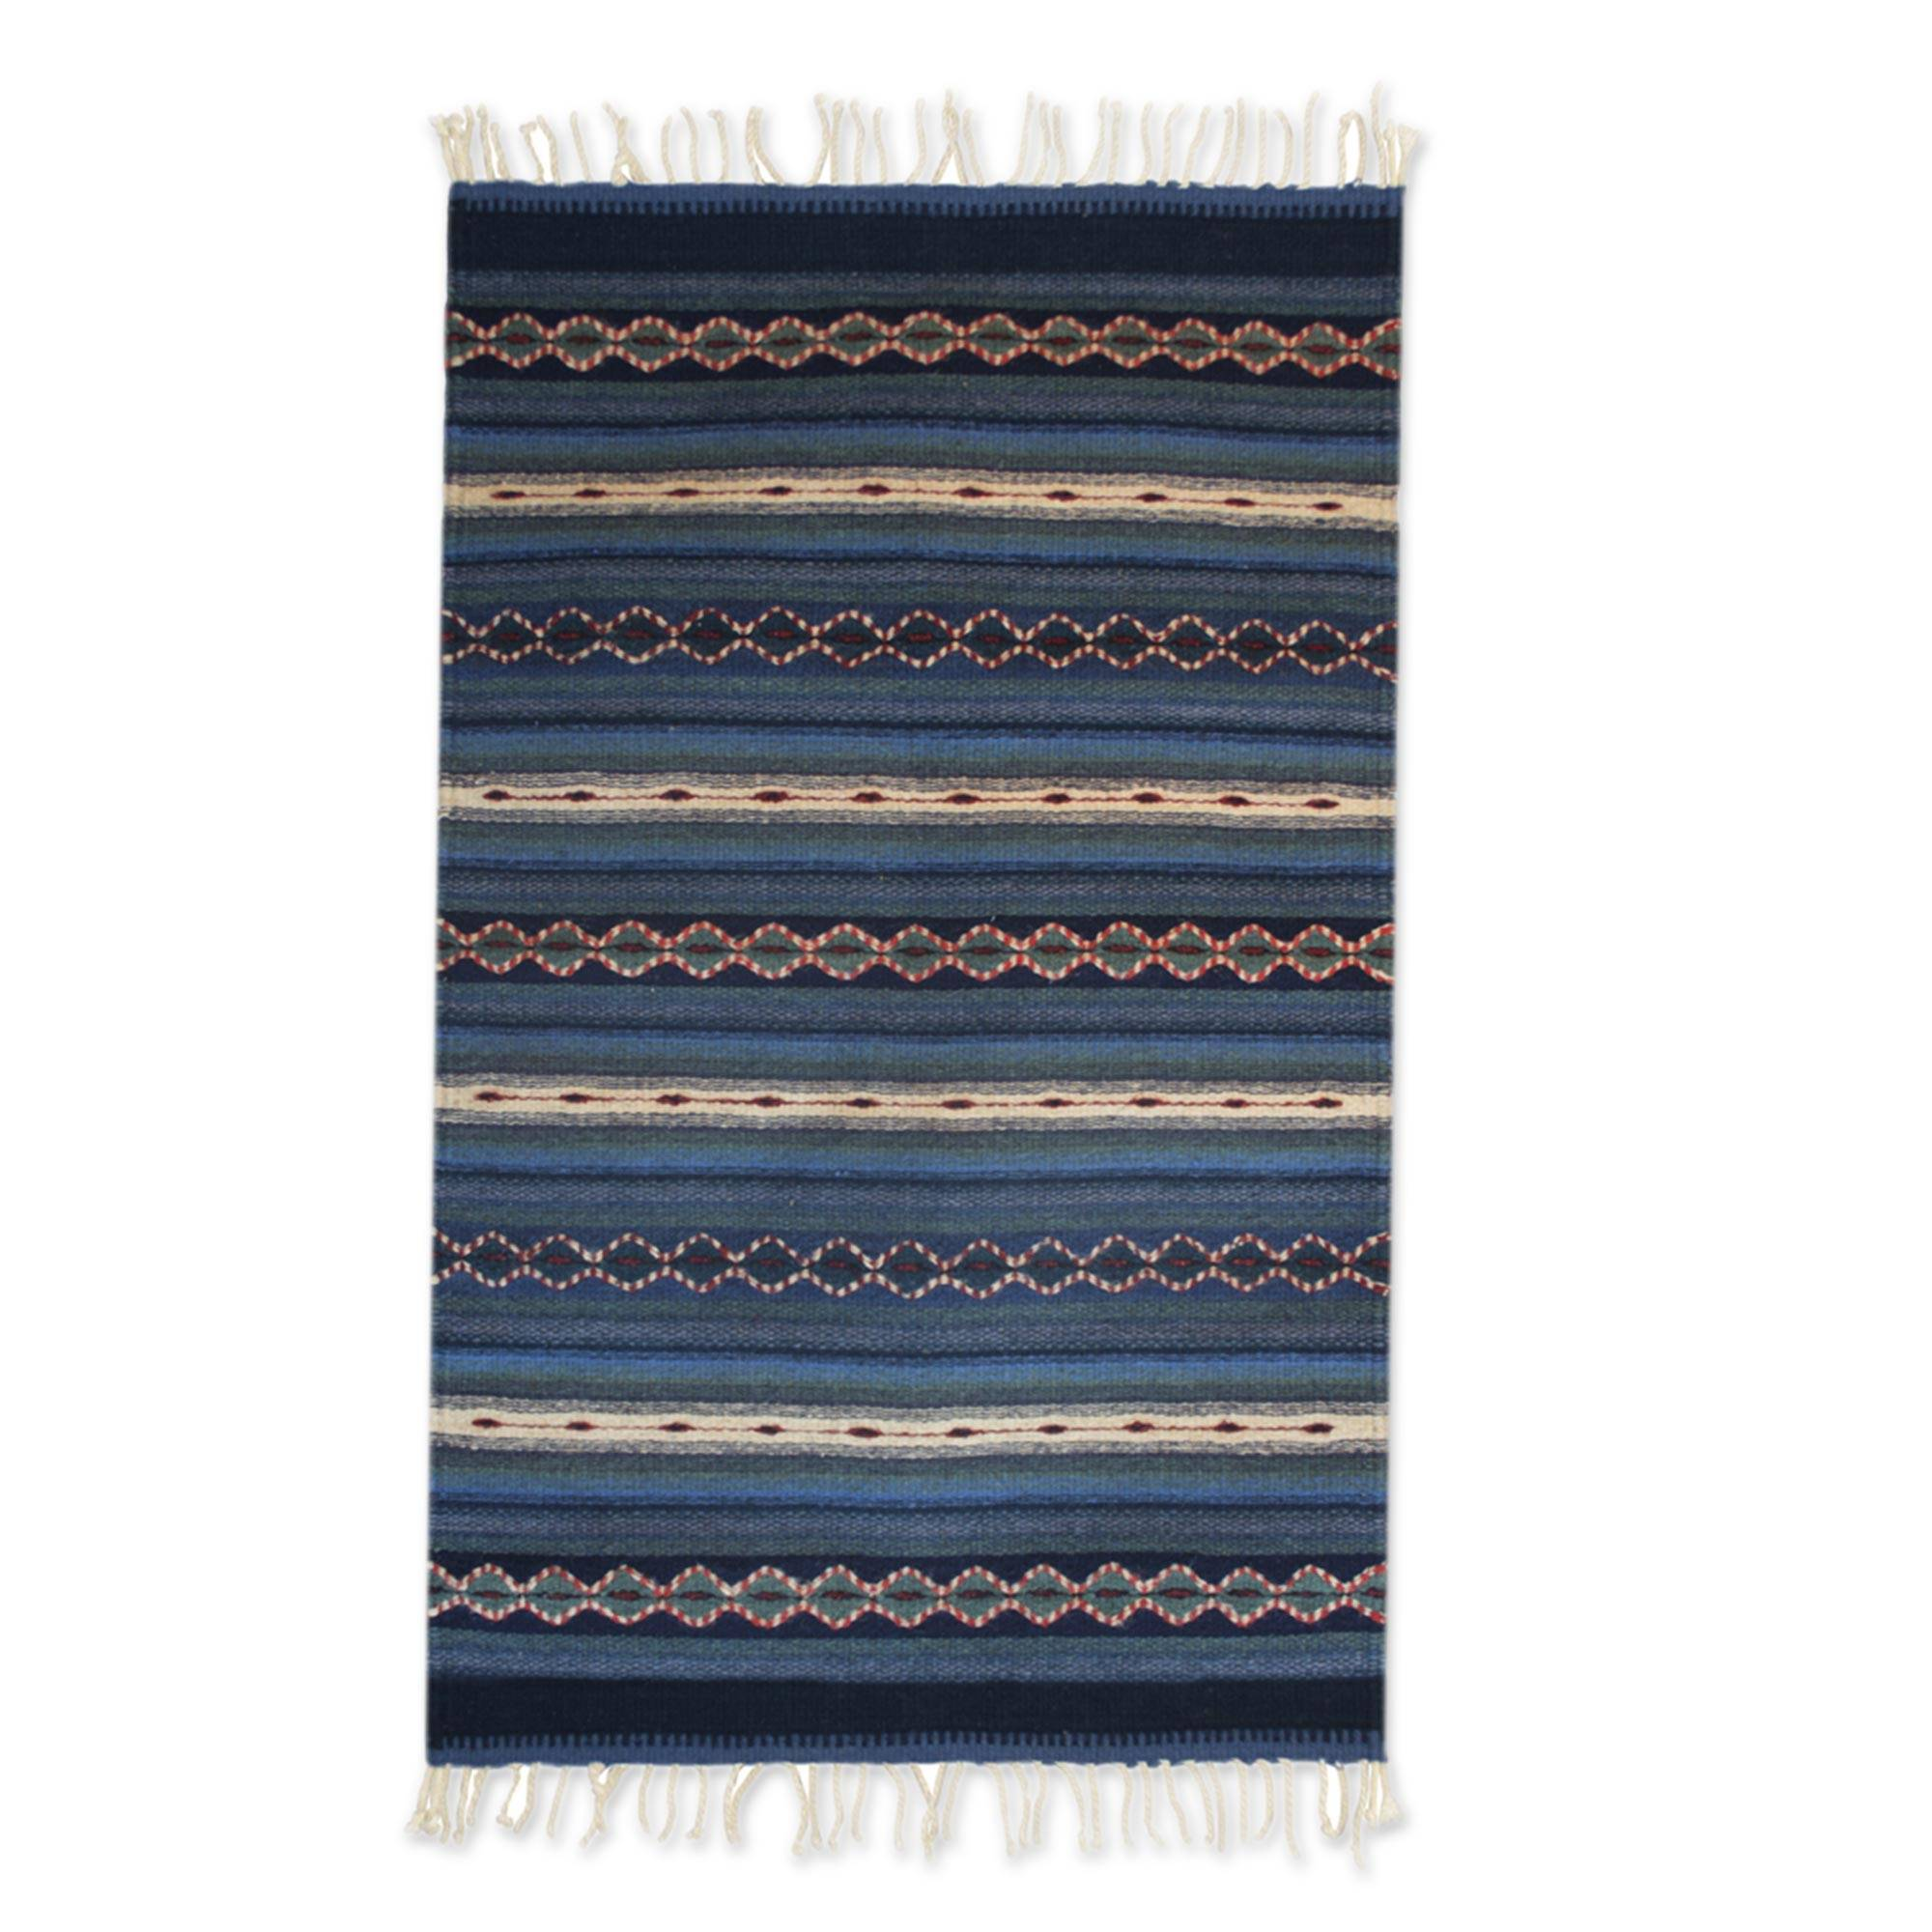 Unicef Market Authentic Zapotec Blue Wool Area Rug 2x3